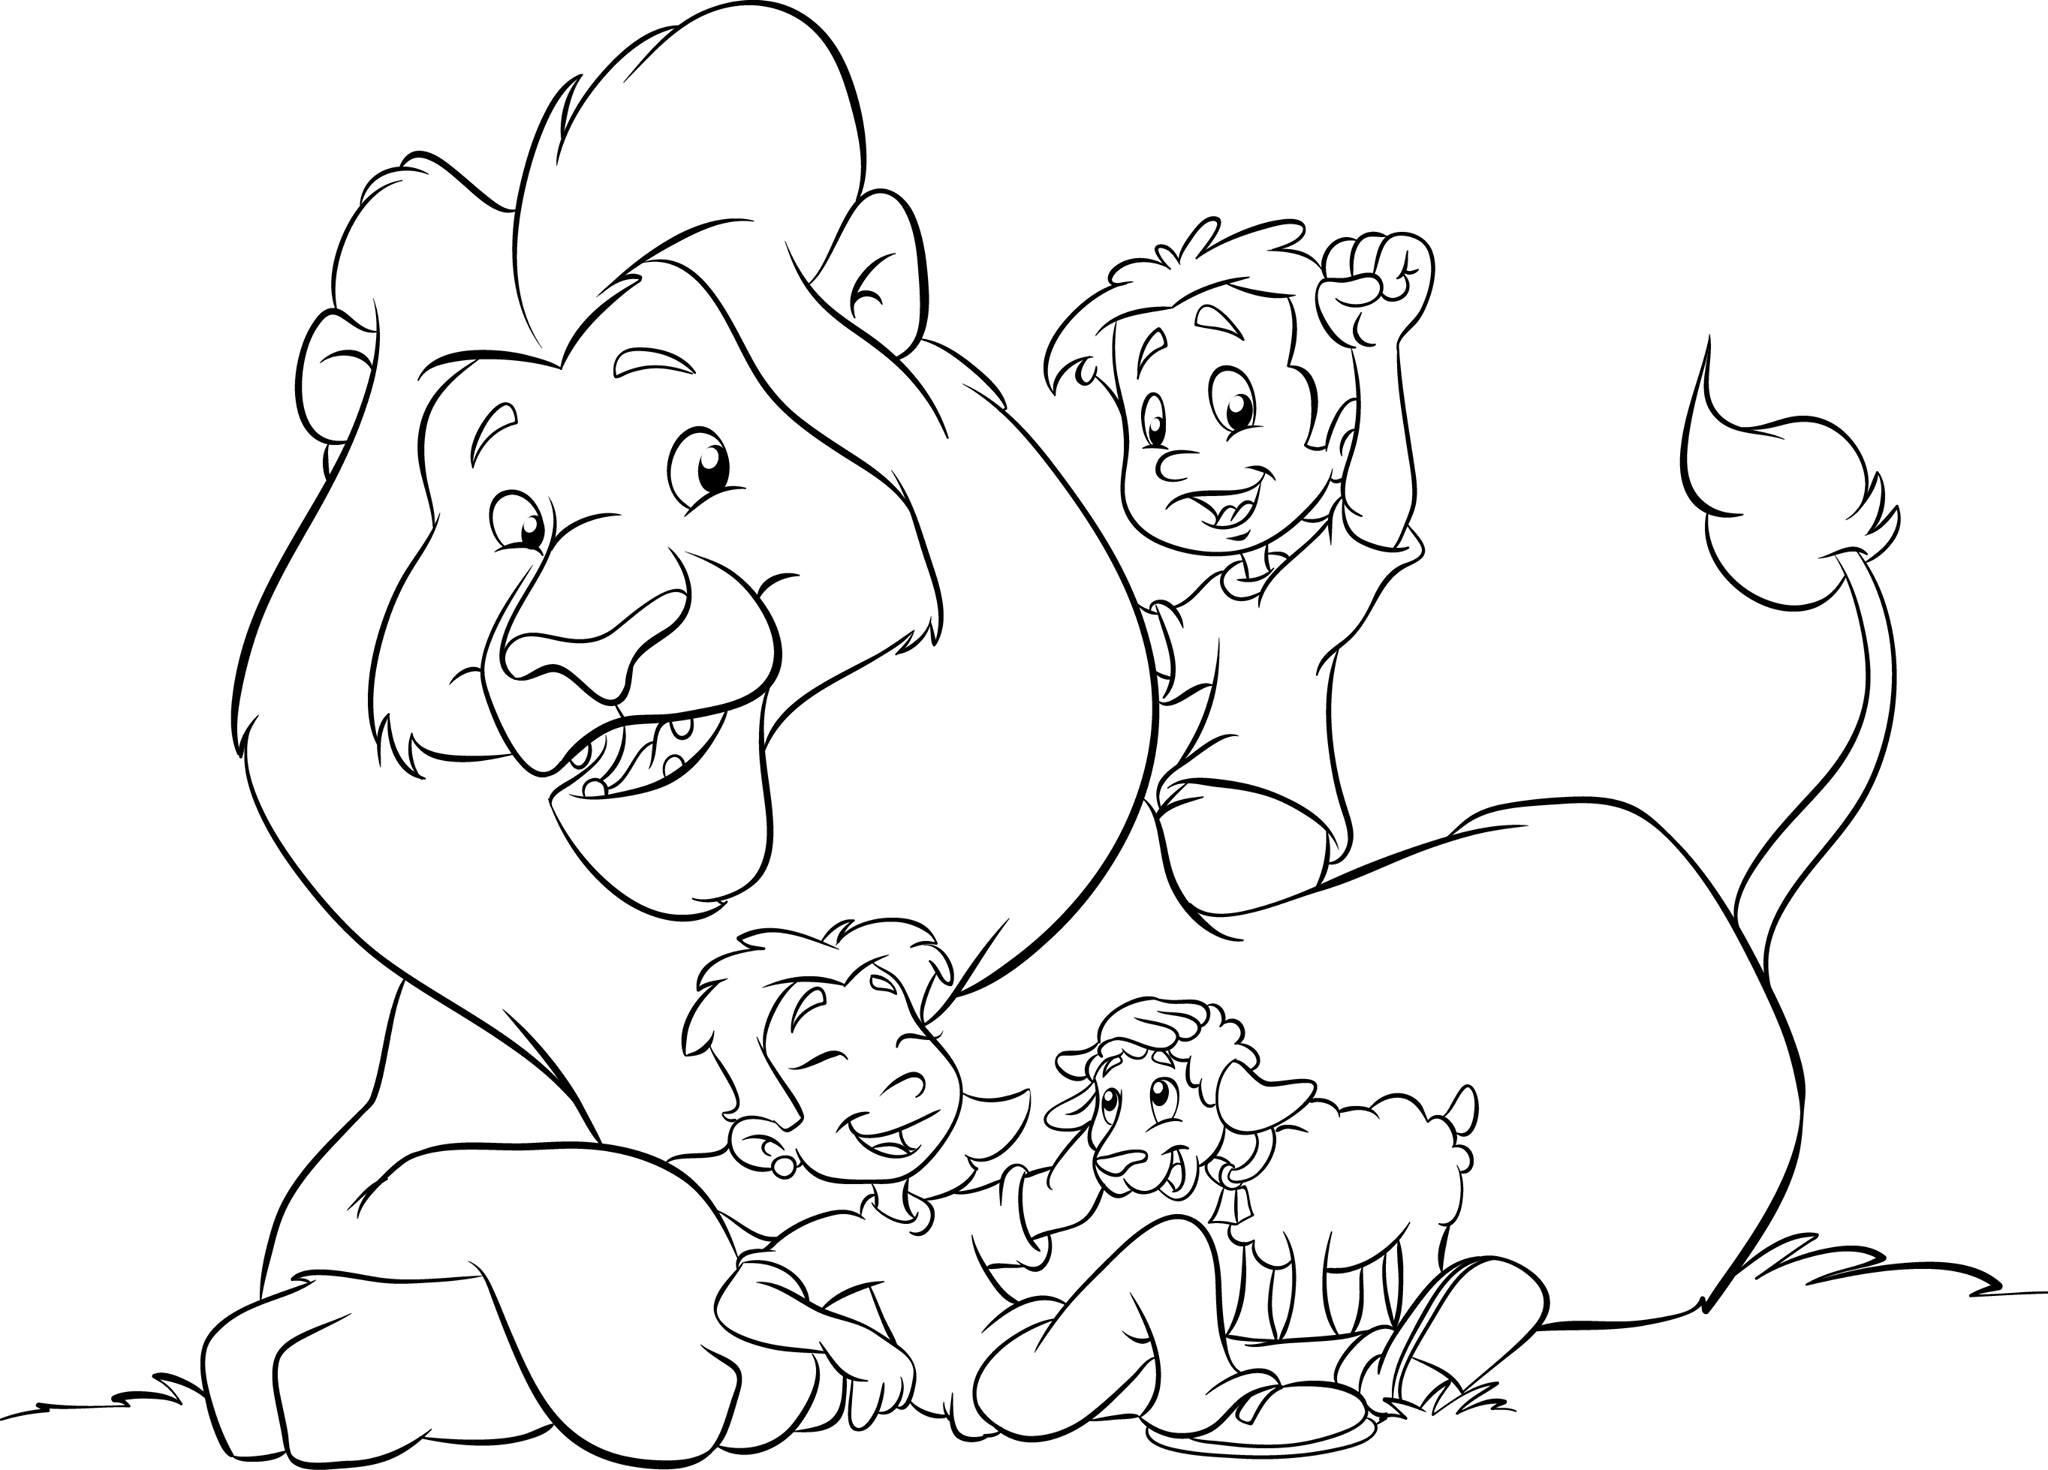 lion and lamb coloring page march lion and lamb printable to color or glue cotton lamb and page coloring lion